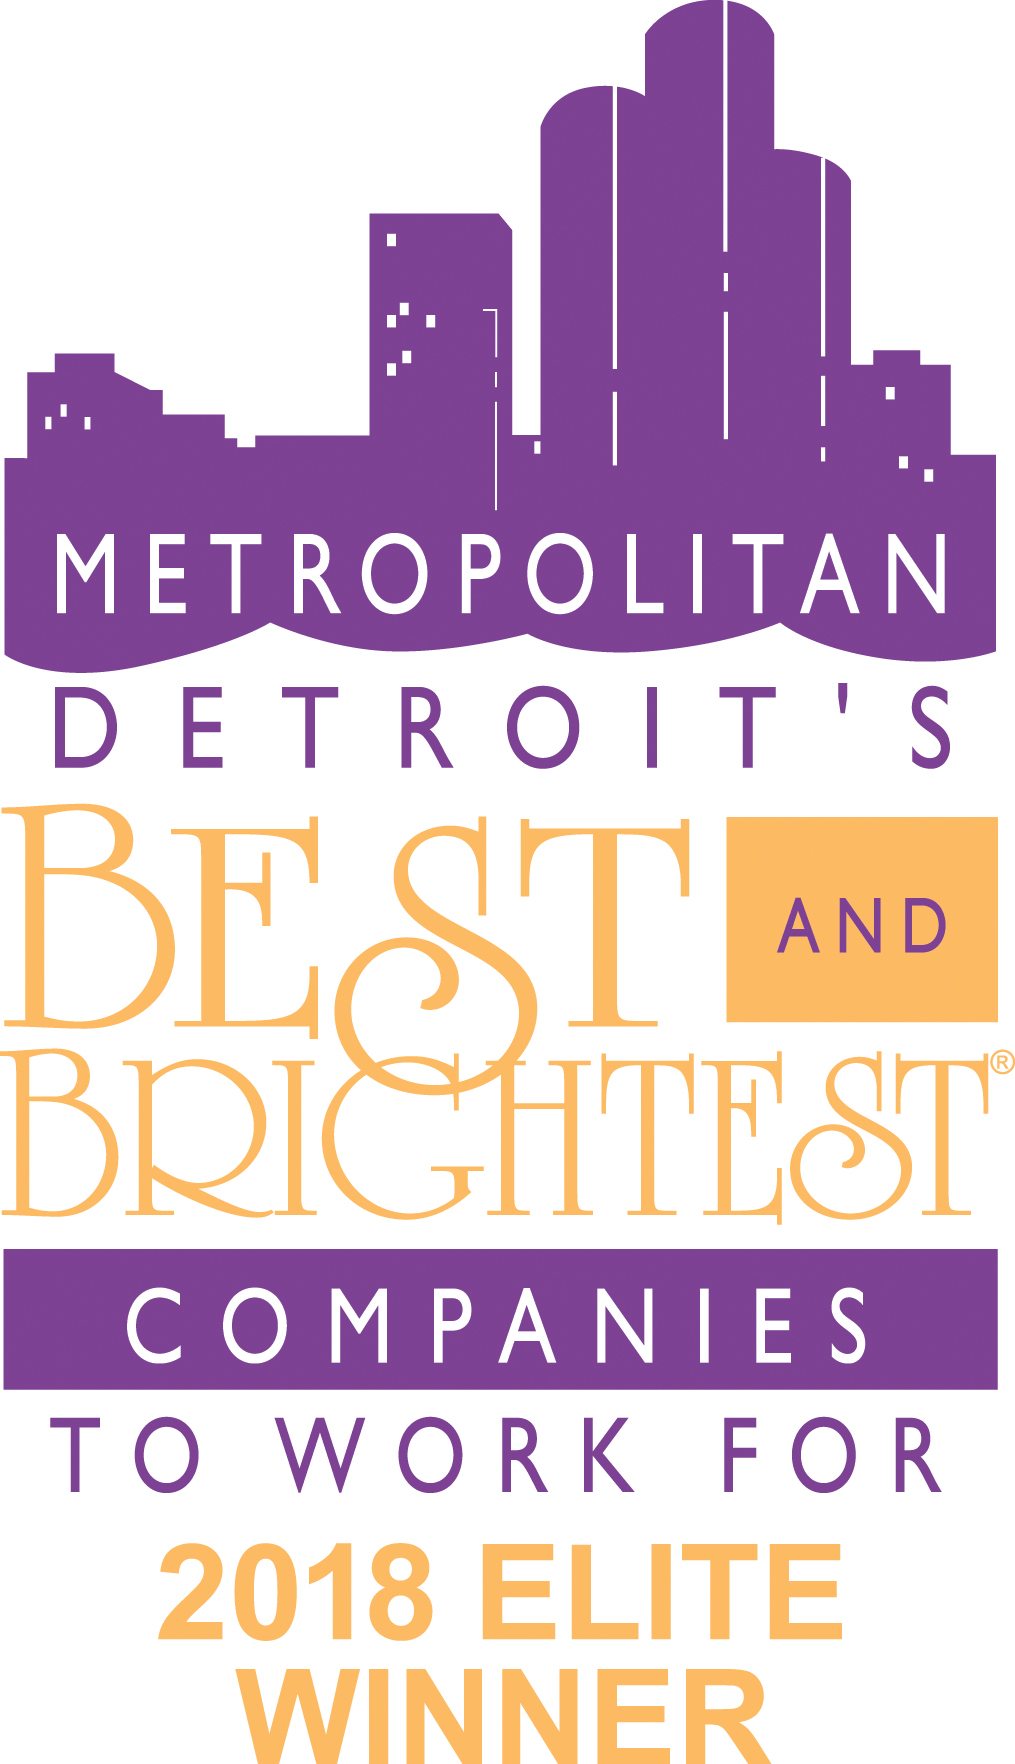 Metropolitan Detroit's Best and Brightest Companies to Work For - 2018 Elite Winner